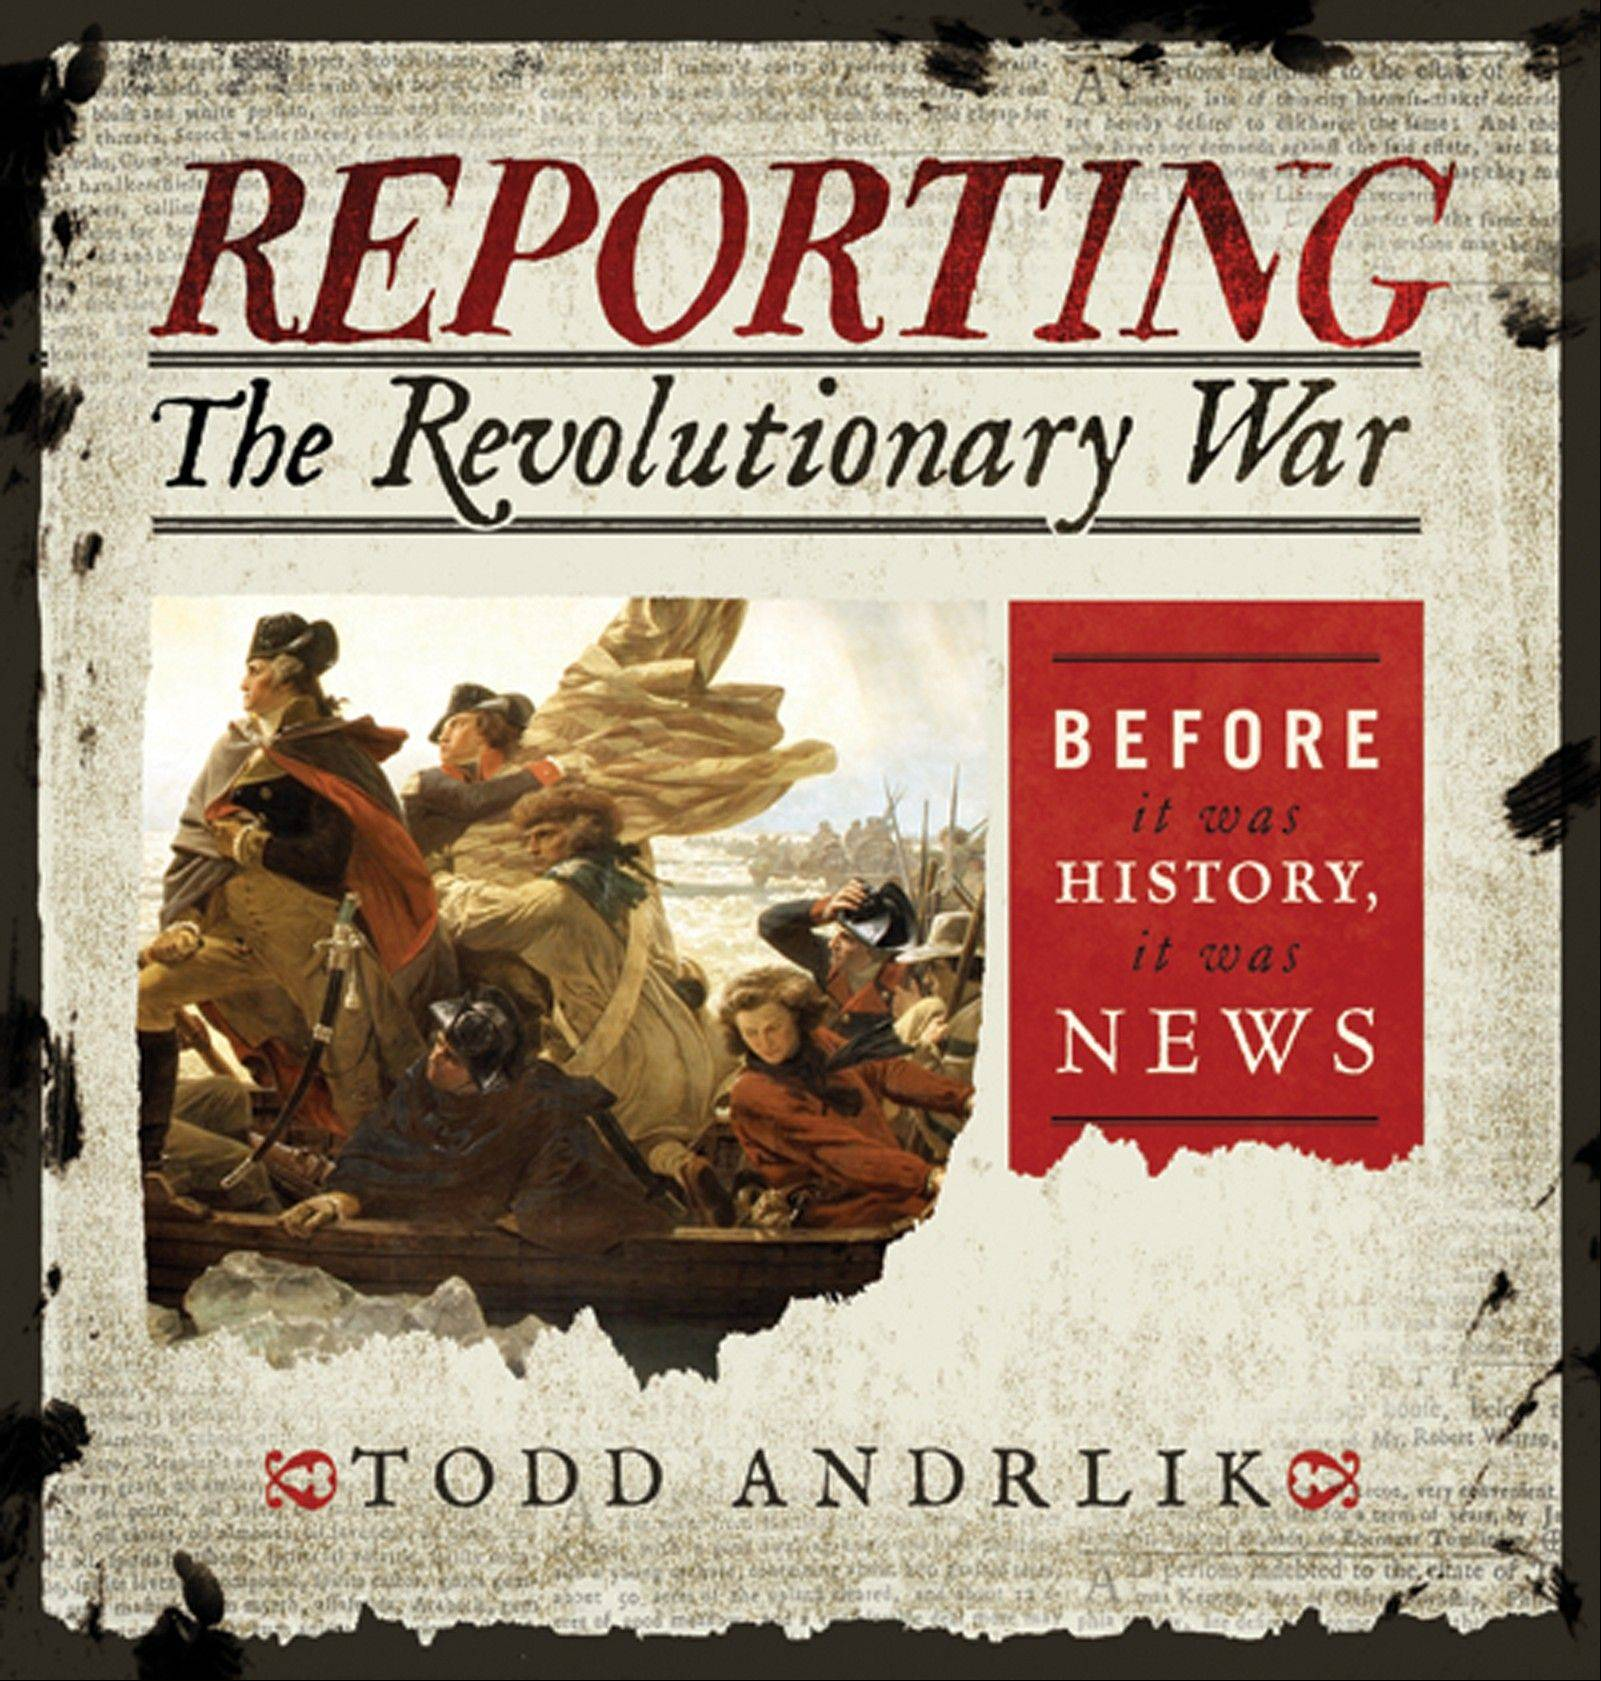 The cover of �Reporting The Revolutionary War.�